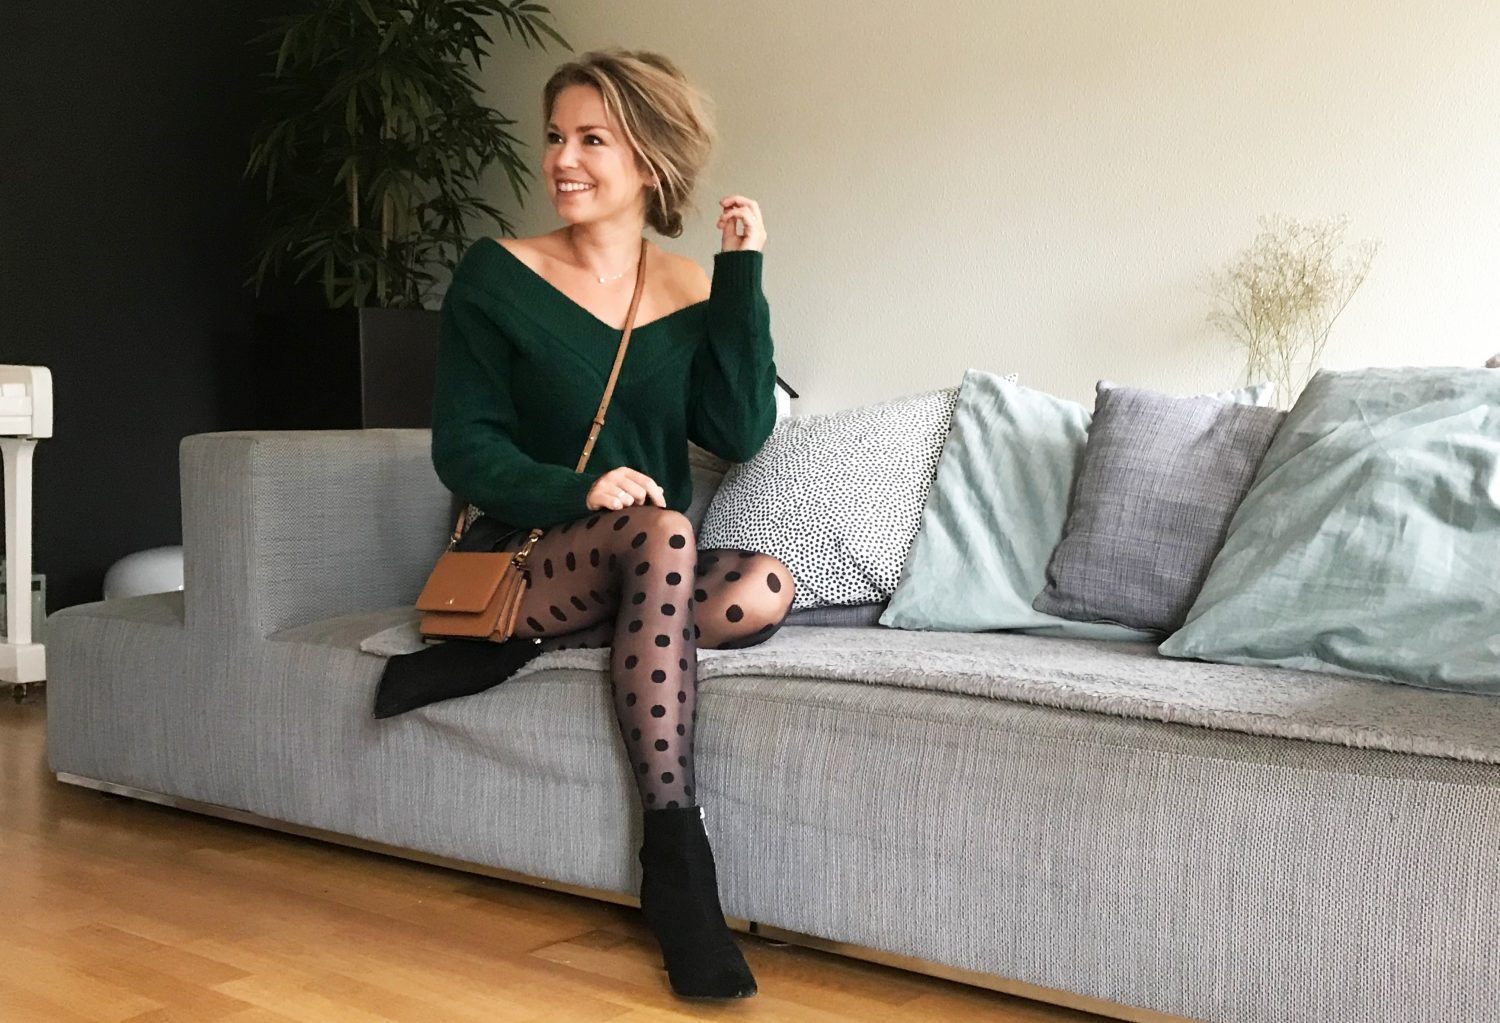 FASHION: HERFST OUTFIT!